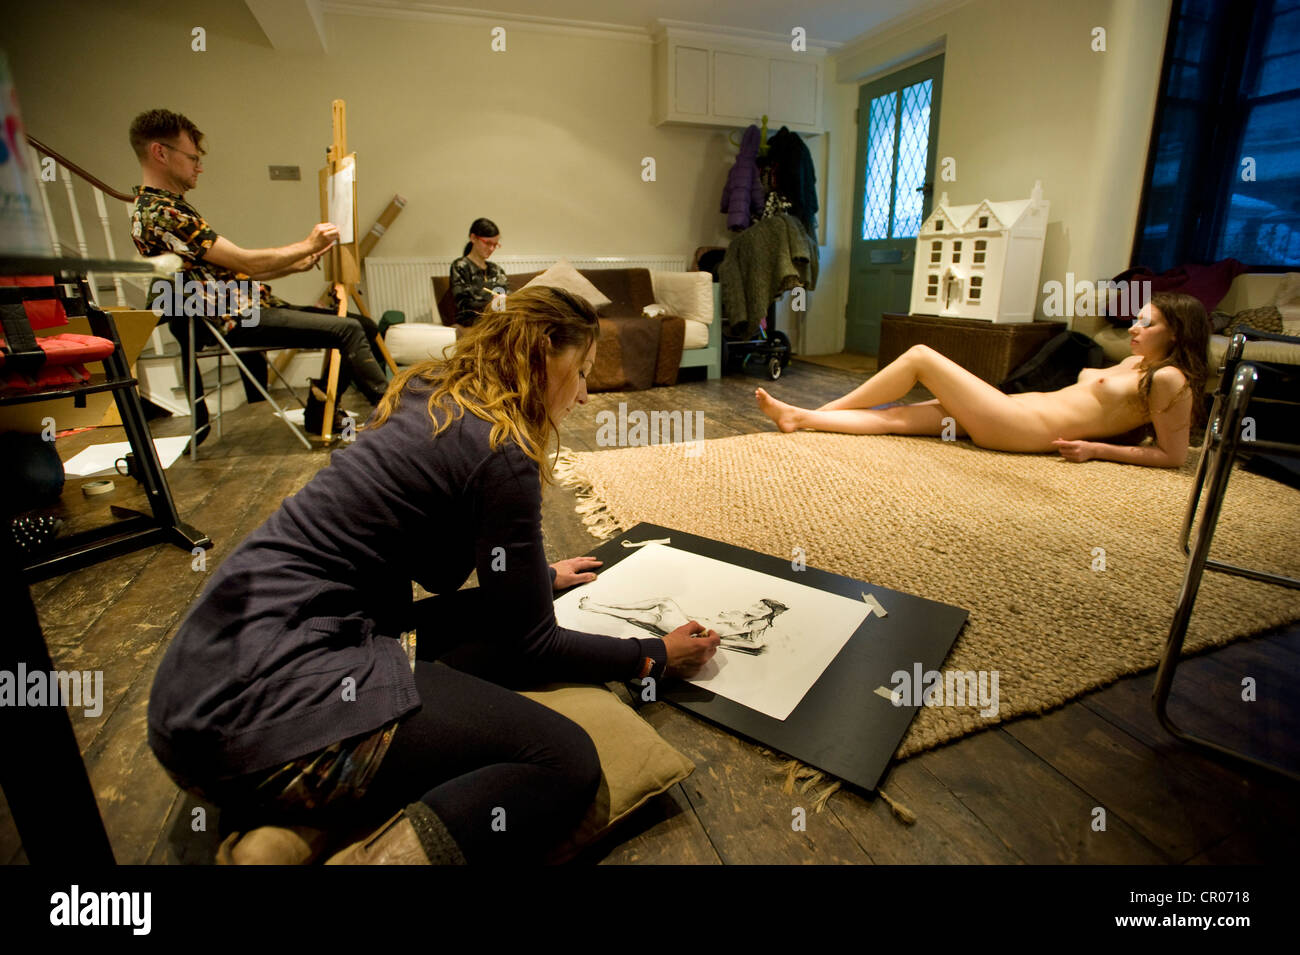 Drawing Class Stock Photos & Drawing Class Stock Images - Alamy